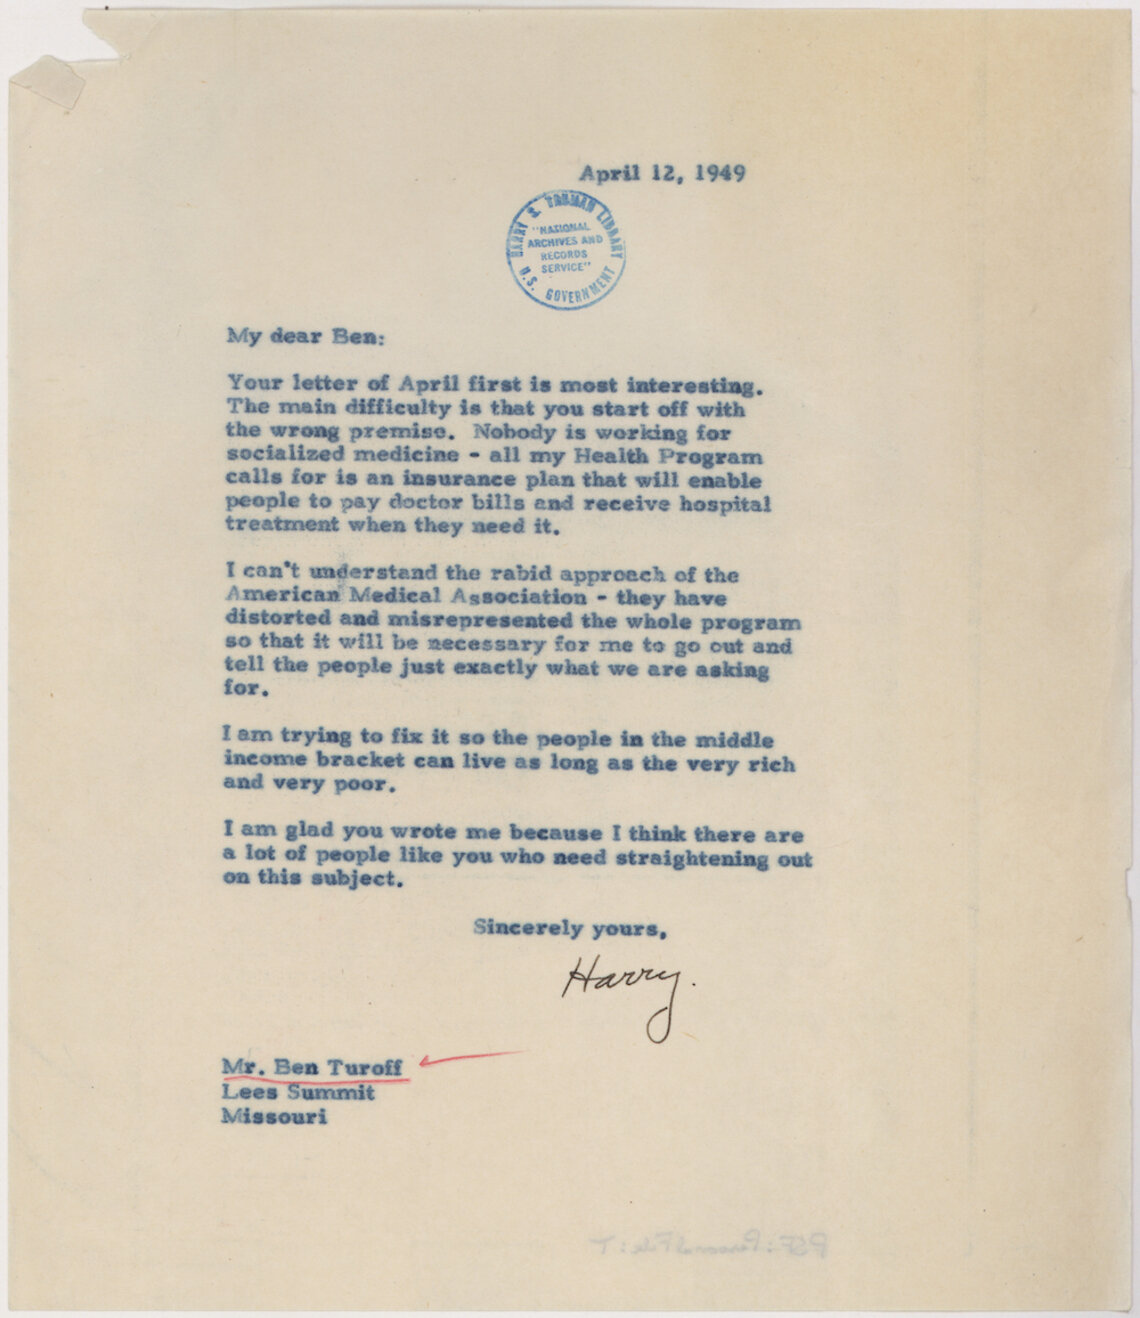 """A 1949 letter to a friend by President Harry Truman reflects the opposition he faced in efforts to create a national health care plan, in particular the A.M.A. misrepresenting his proposal as """"socialized medicine"""". A national program providing support for some lower-income and older people was not accomplished until more than a decade and a half later."""